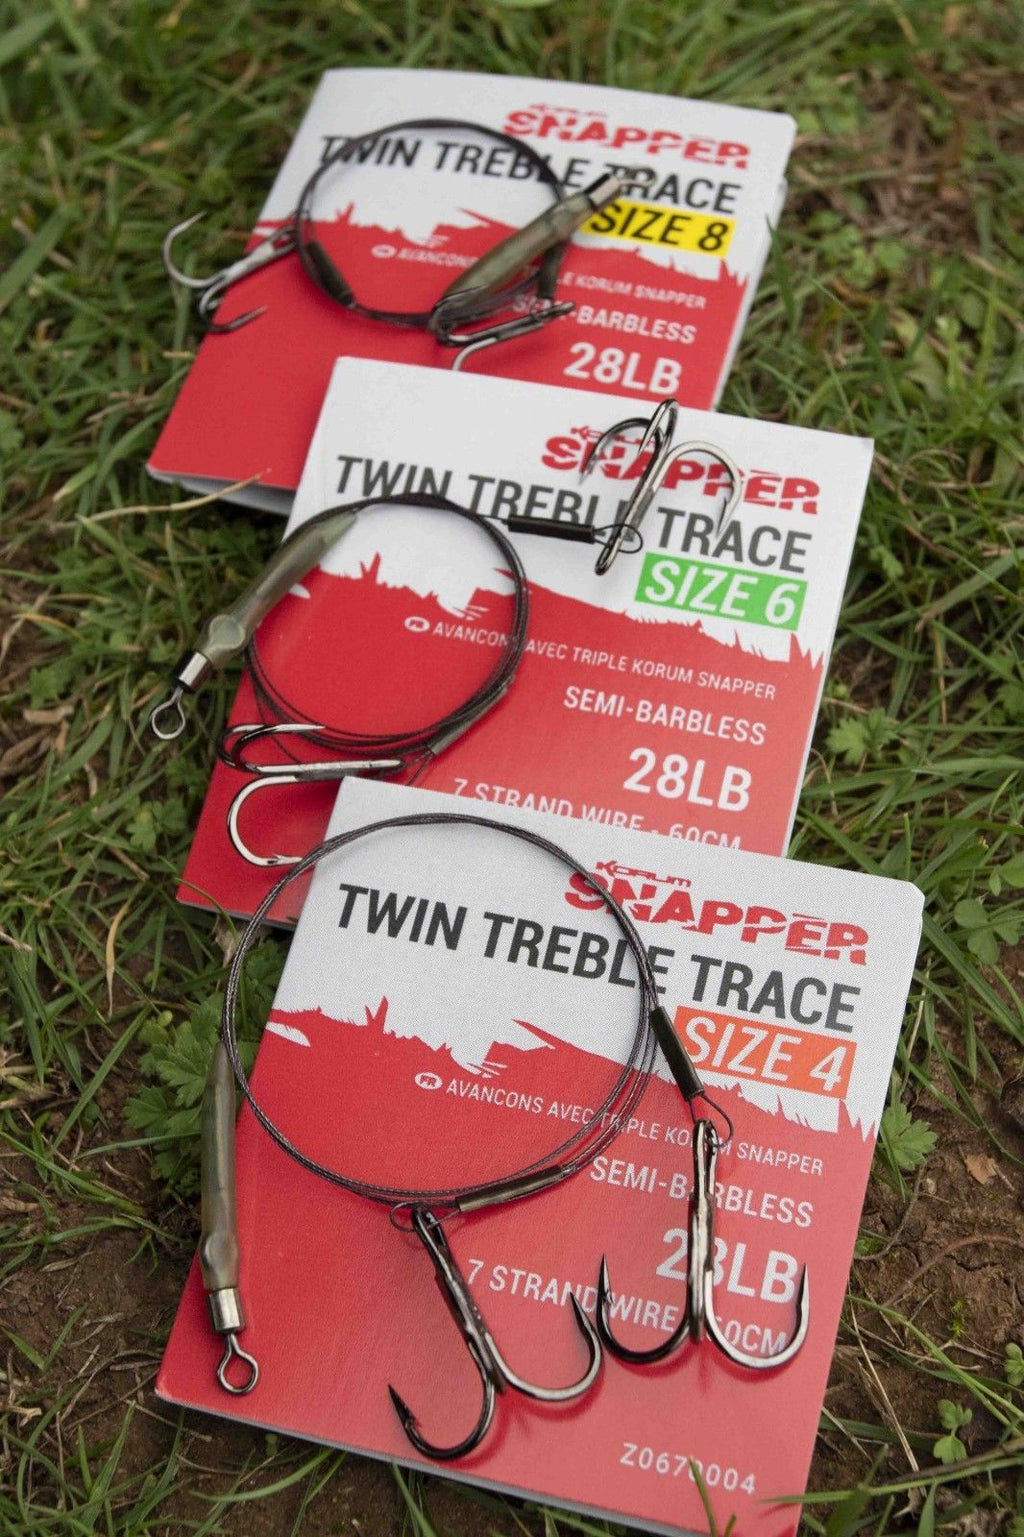 Korum Snapper Twin Treble Semi Barbless Wire Trace